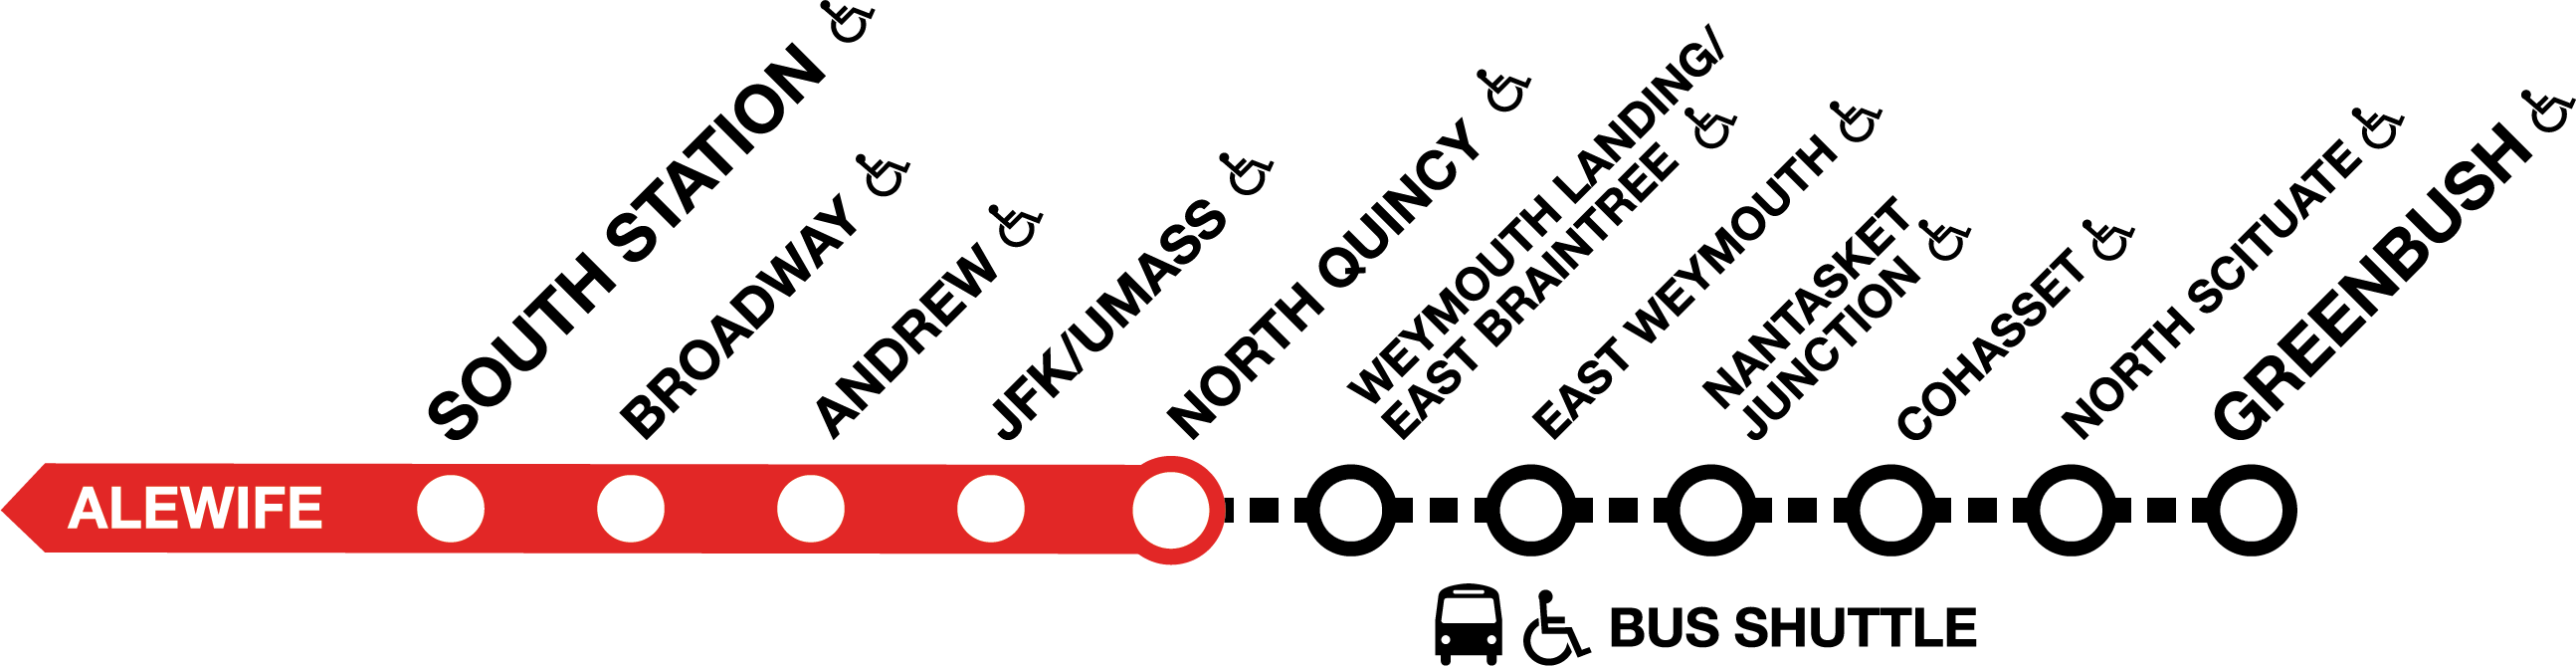 Greenbush Line bus shuttle from Greenbush to North Quincy